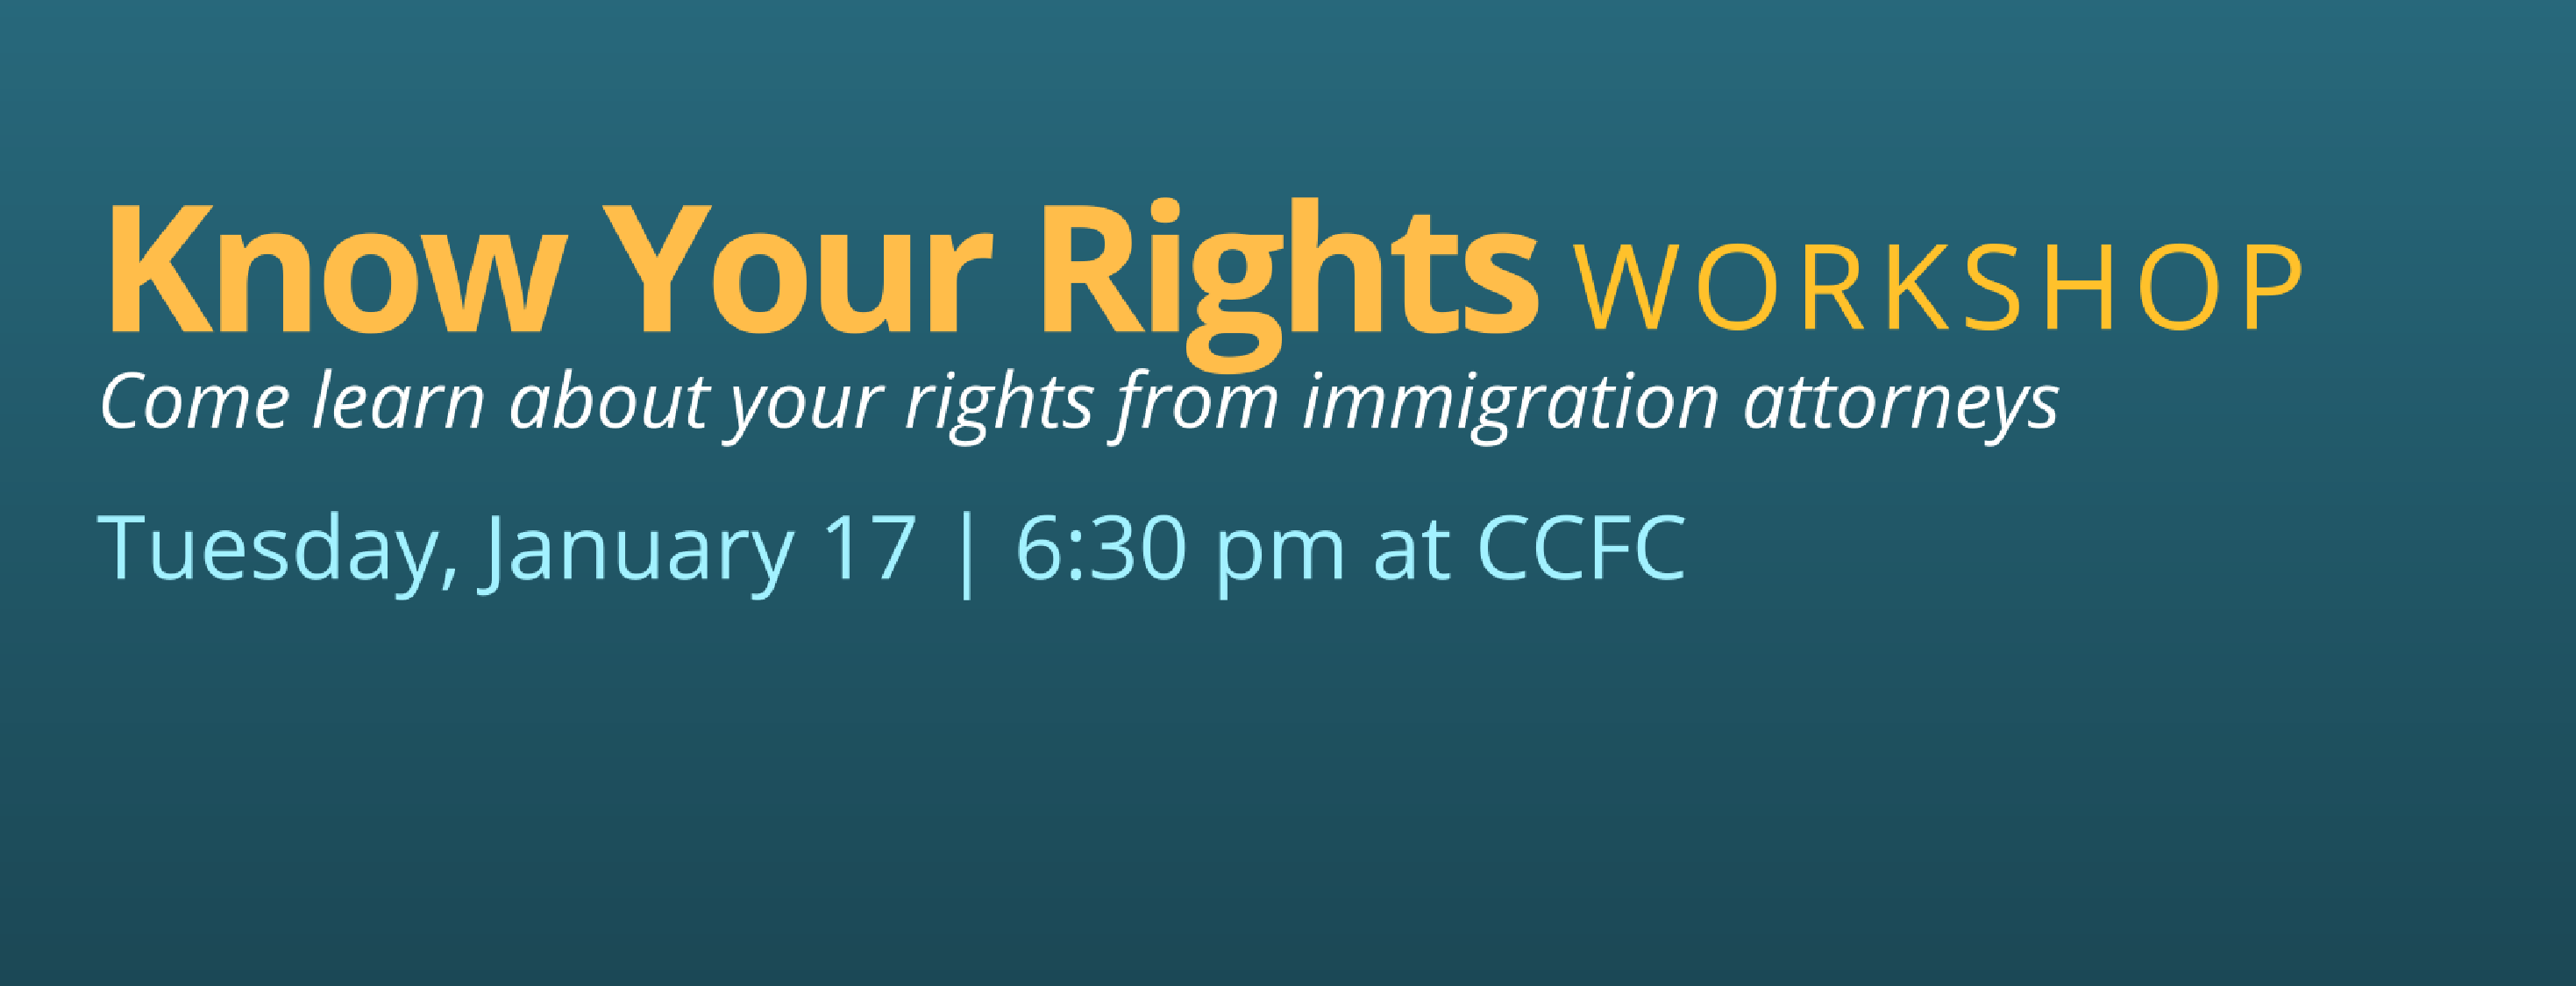 Know Your Rights Workshop, January 17, 2017